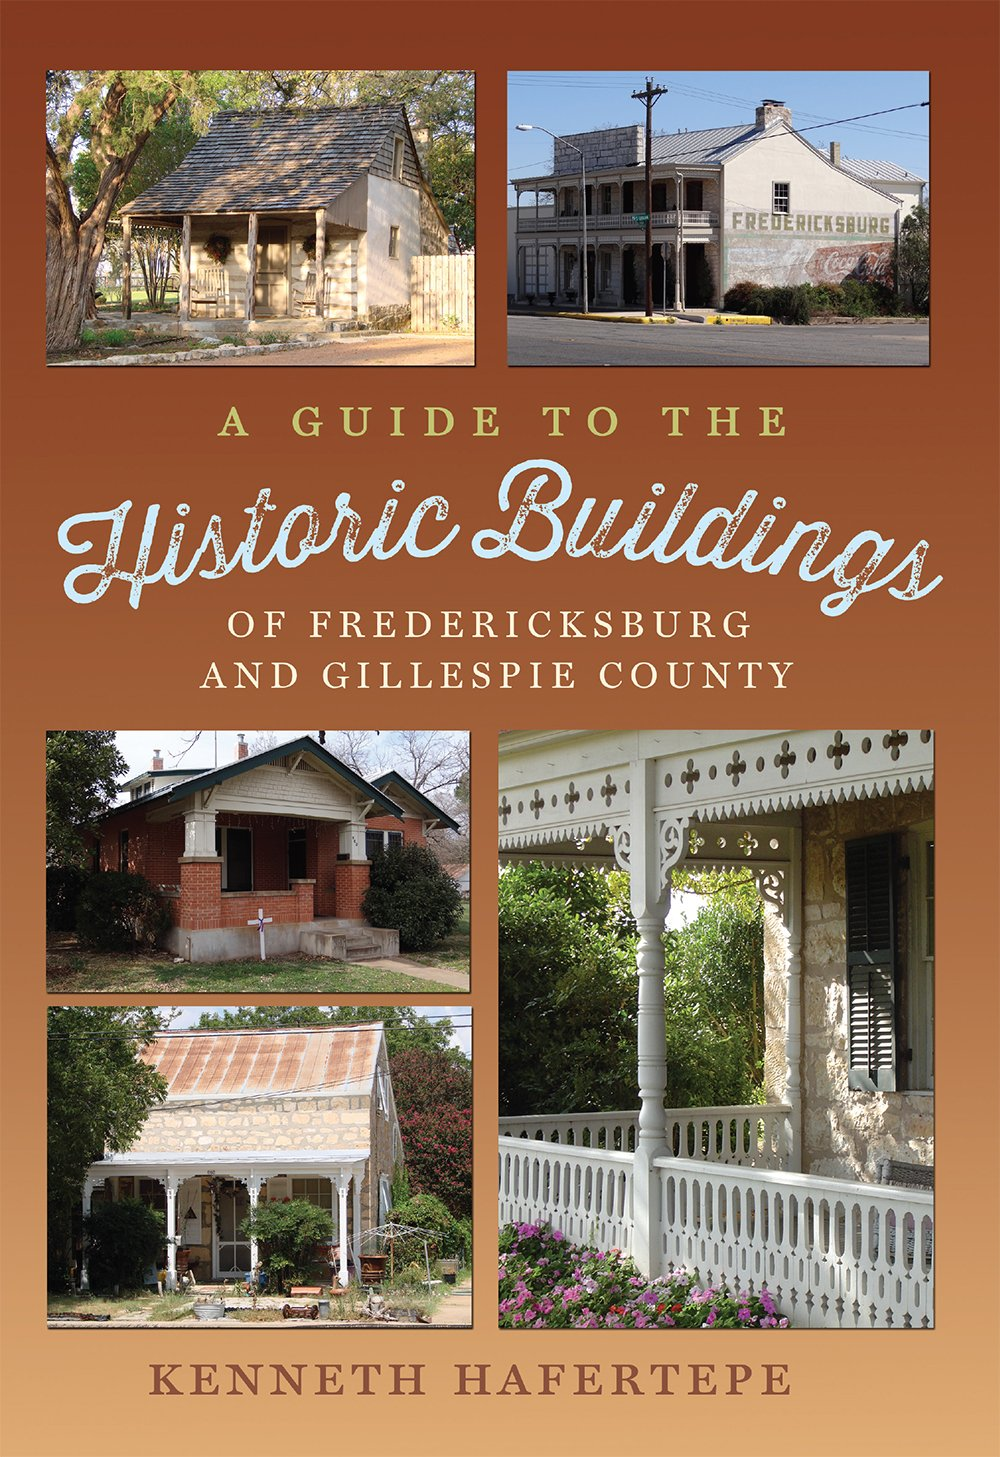 A Guide to the Historic Buildings of Fredericksburg and Gillespie ...